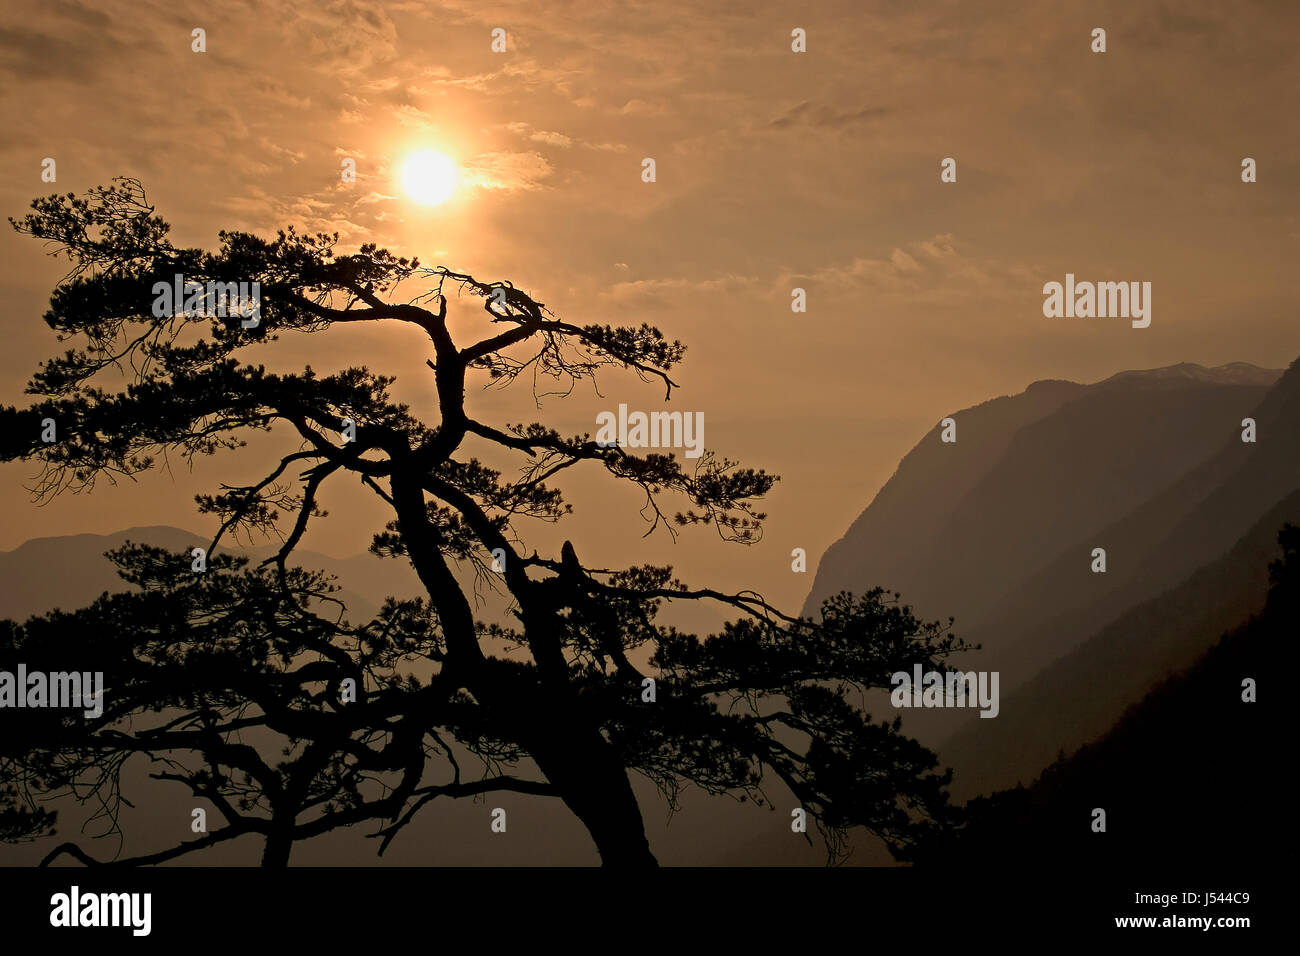 tree mountains muddily sultry sultriness stoicism passivity gay scenery - Stock Image